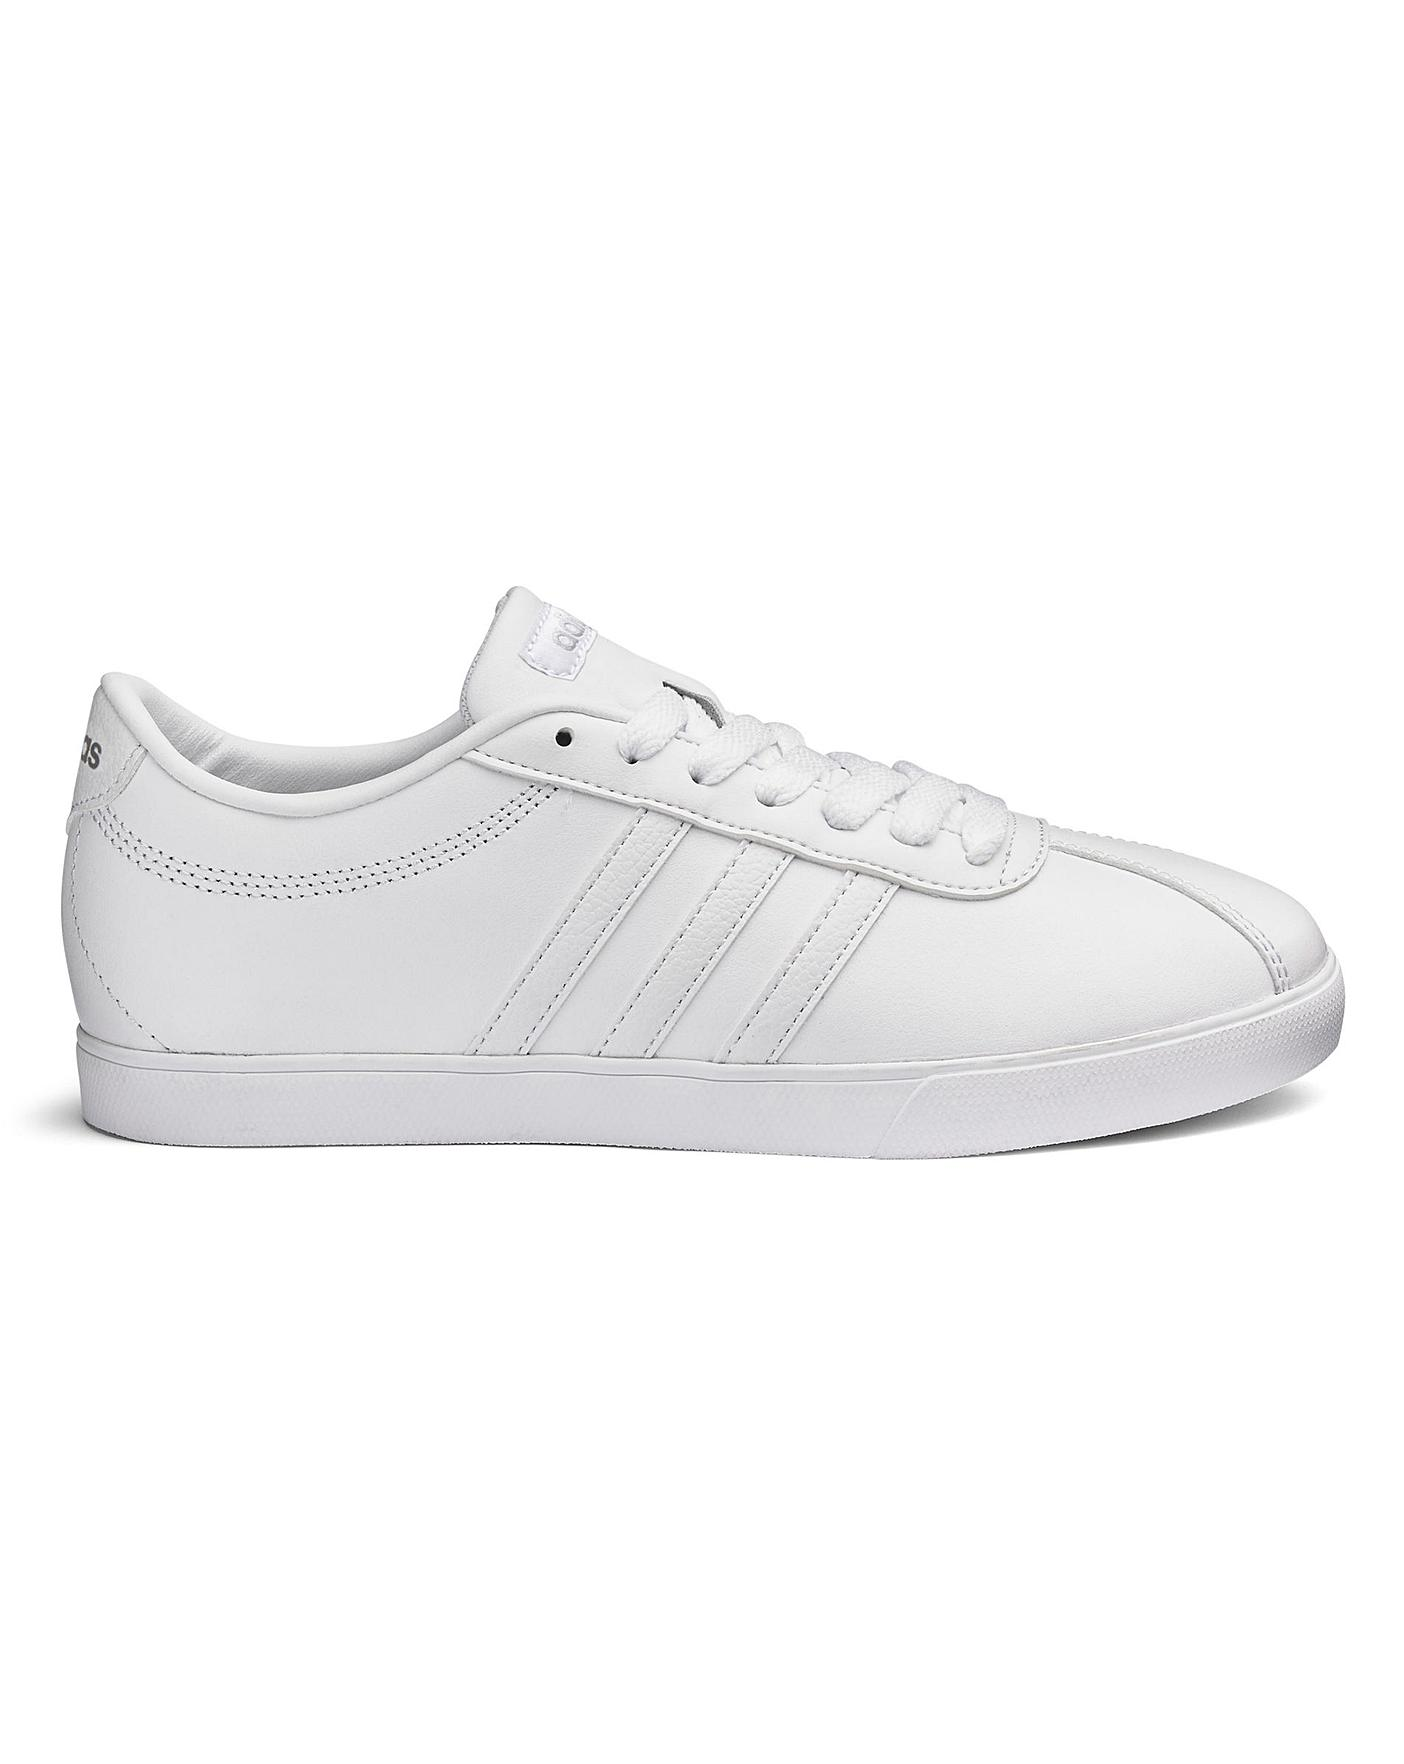 Adidas Courtset Trainers | Simply Be